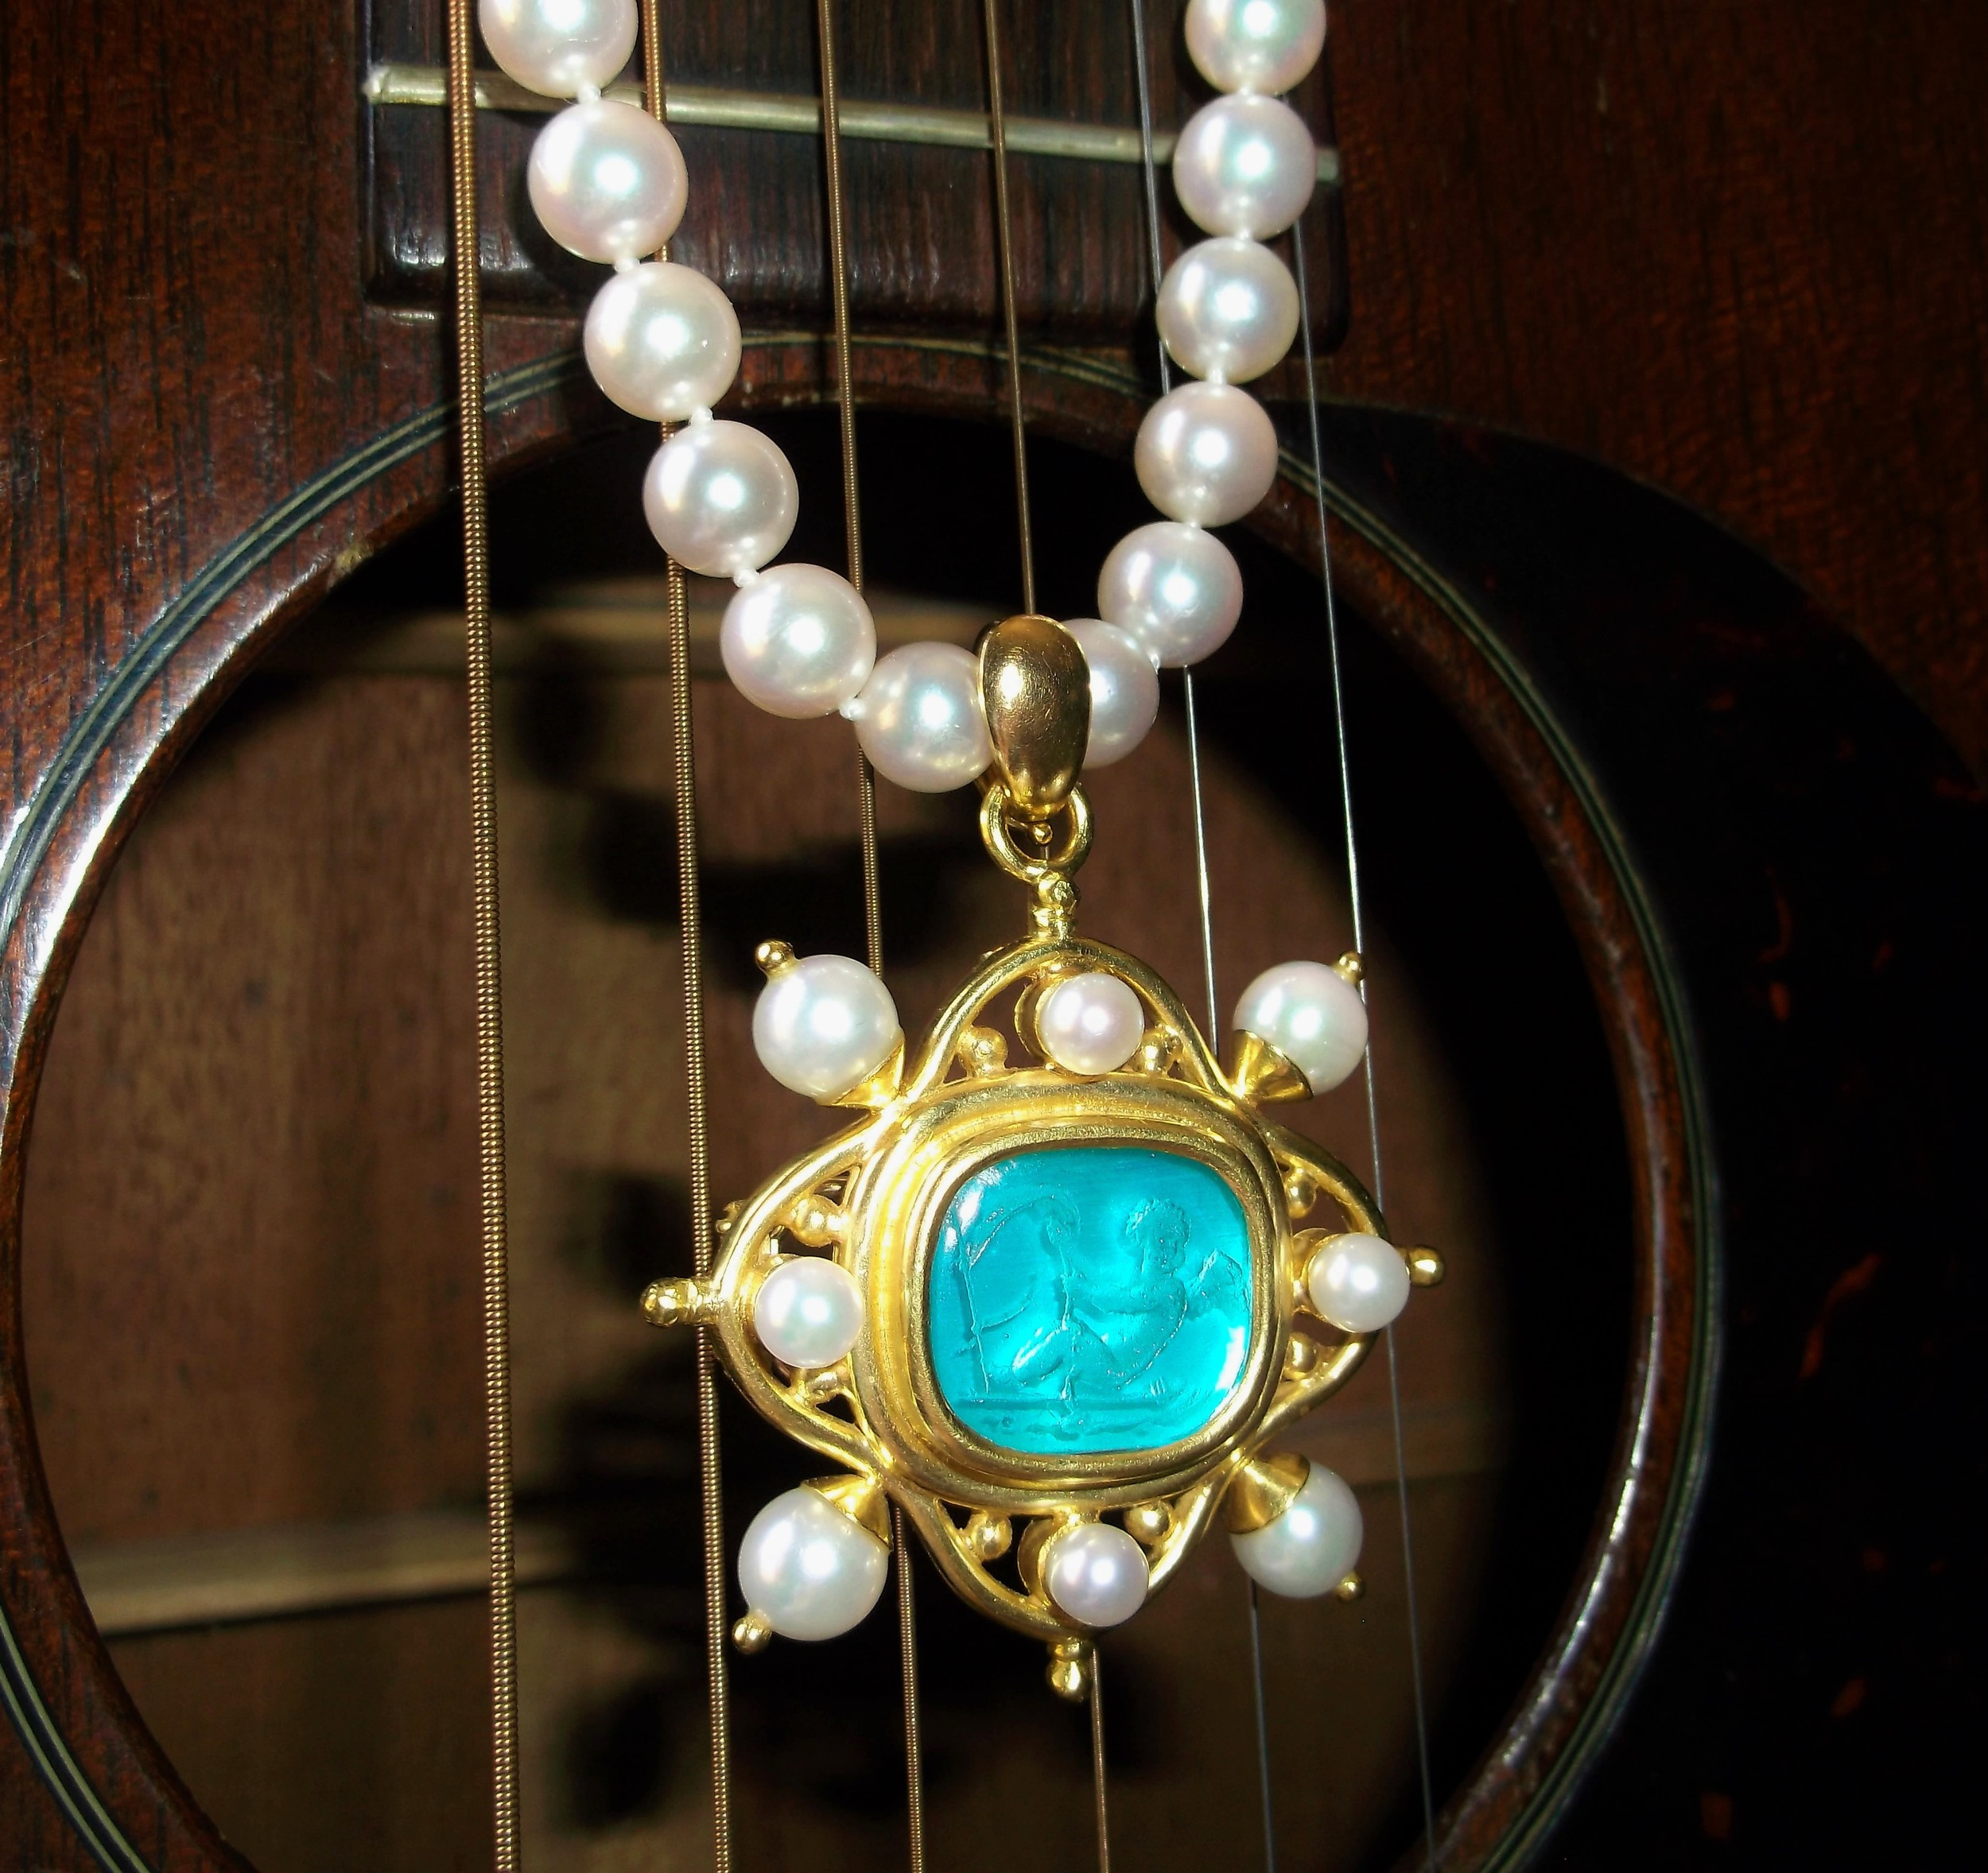 "SOLD - Beautiful signed Elizabeth Locke 19K yellow gold, pearl and carved intaglio Venetian glass pendant/broach on a classic 18"" strand of 7.5-8 mm pearls."